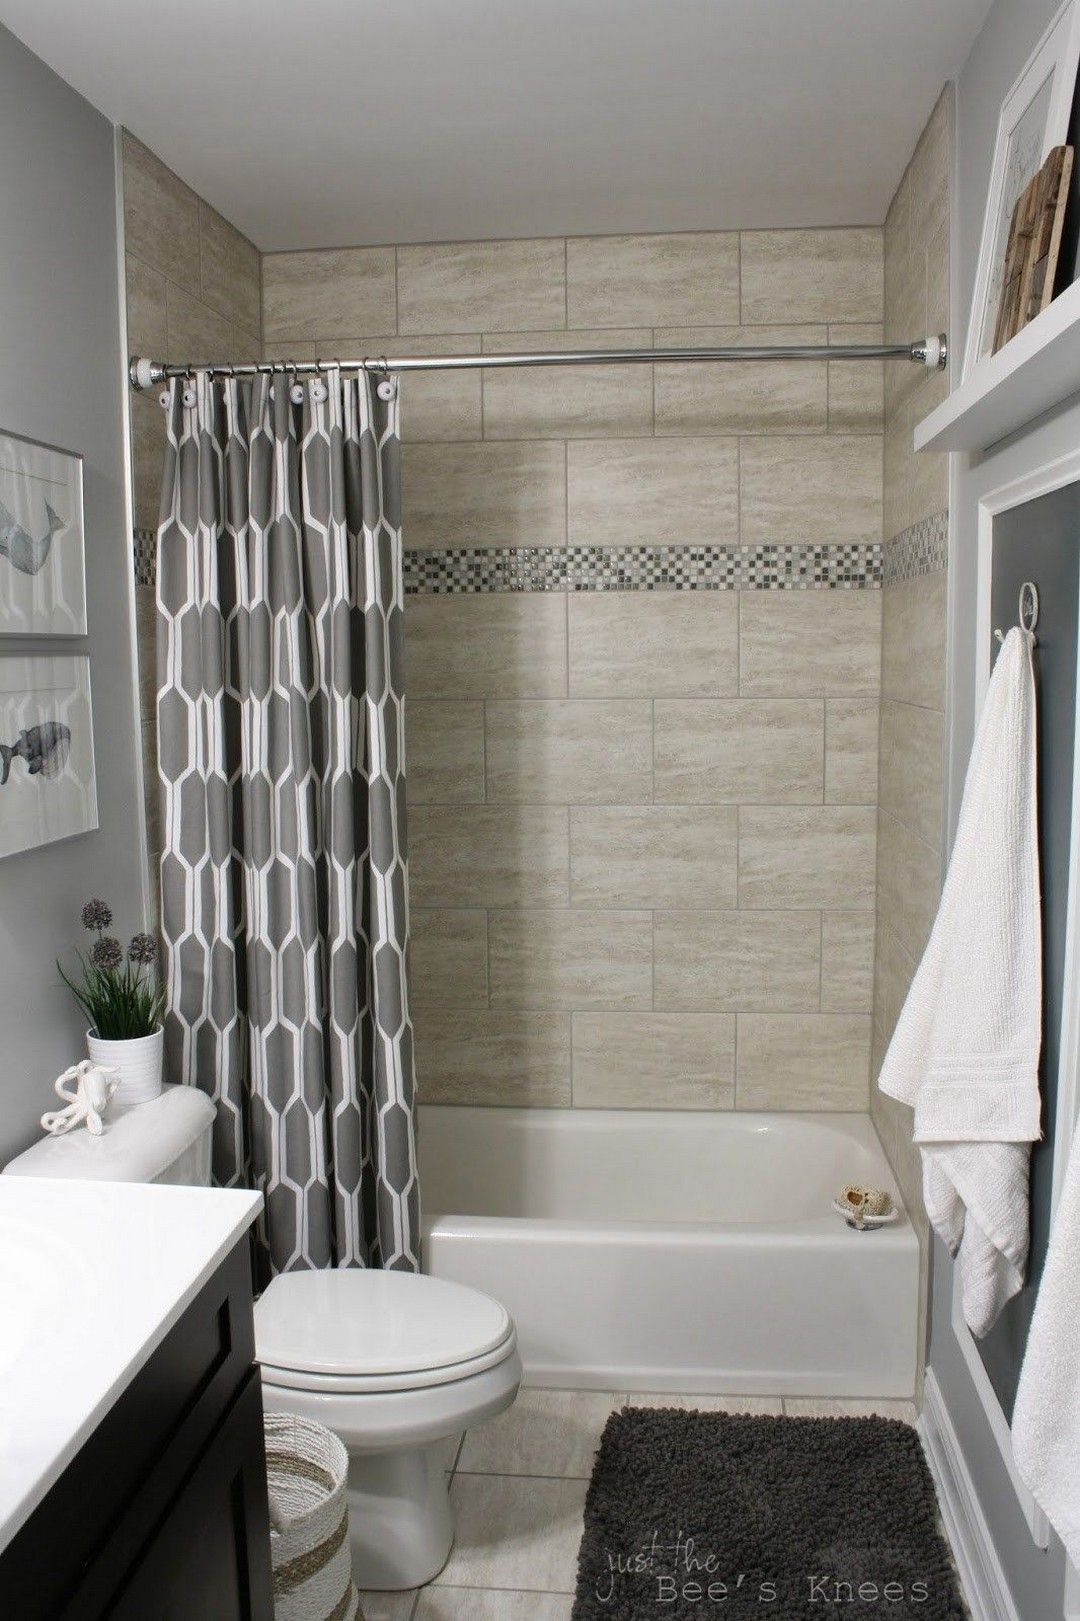 70 Mini Bathroom Remodel Ideas With Blending Functionality And